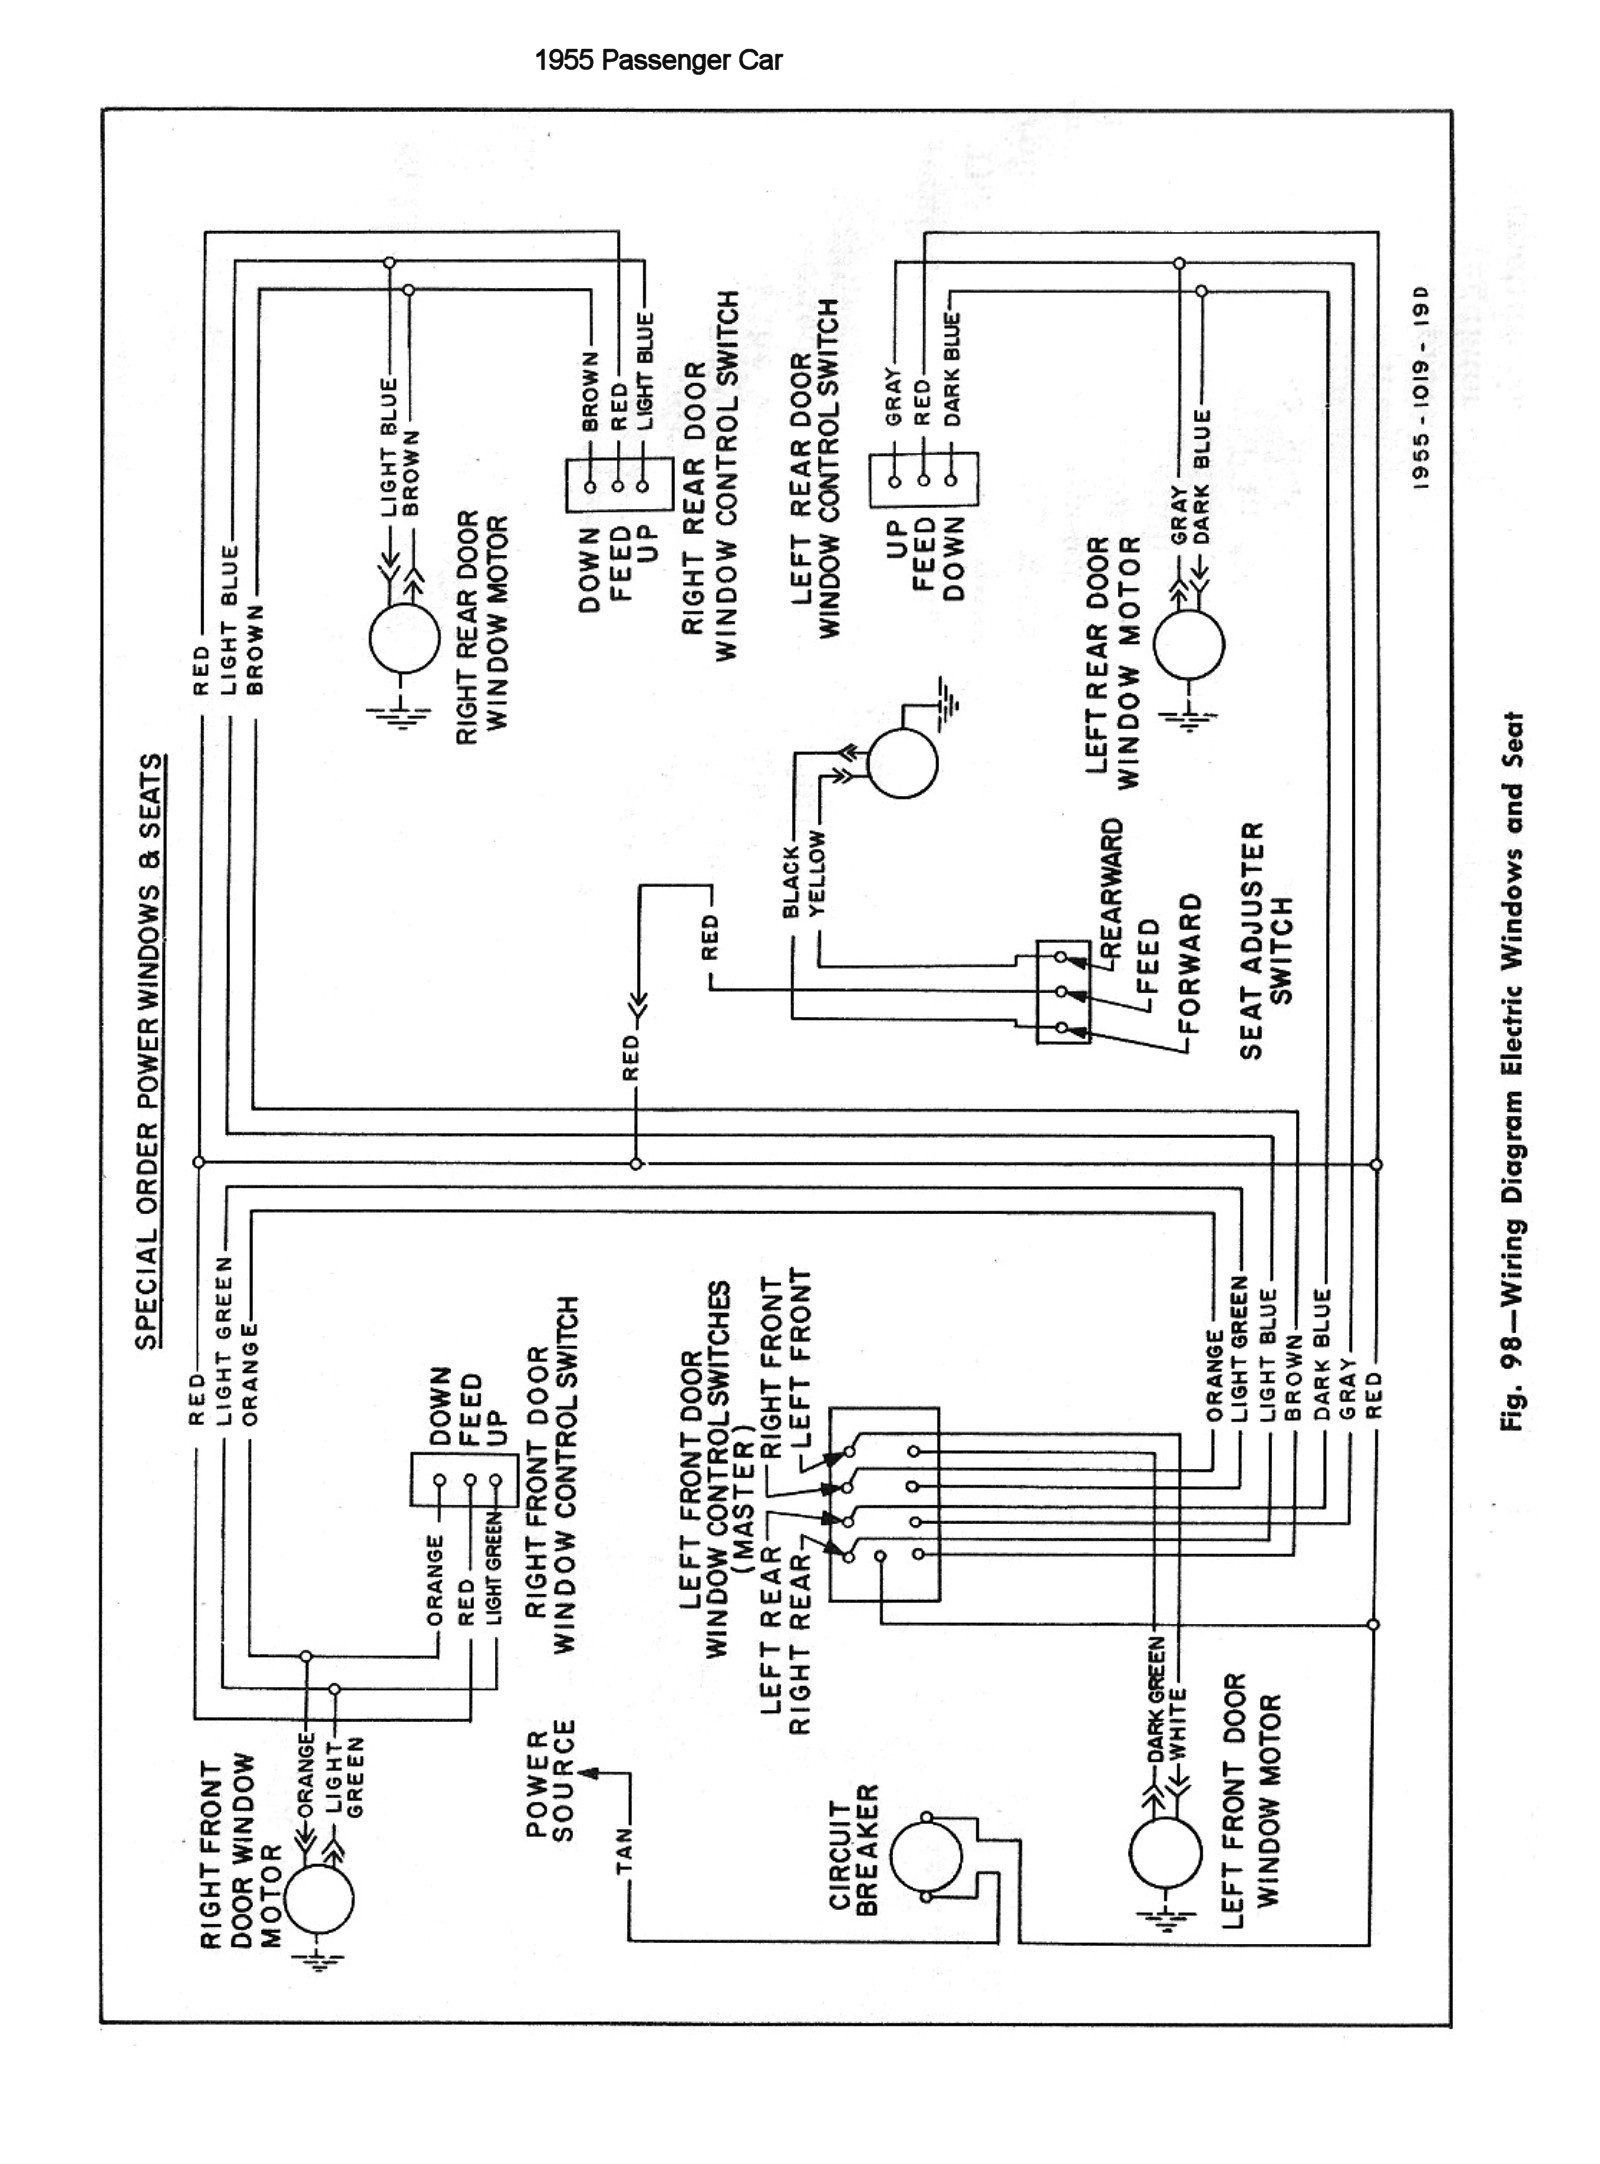 1955 chevy turn signal wiring diagram wiringdiagram org rh pinterest com 55  chevy turn signal wiring